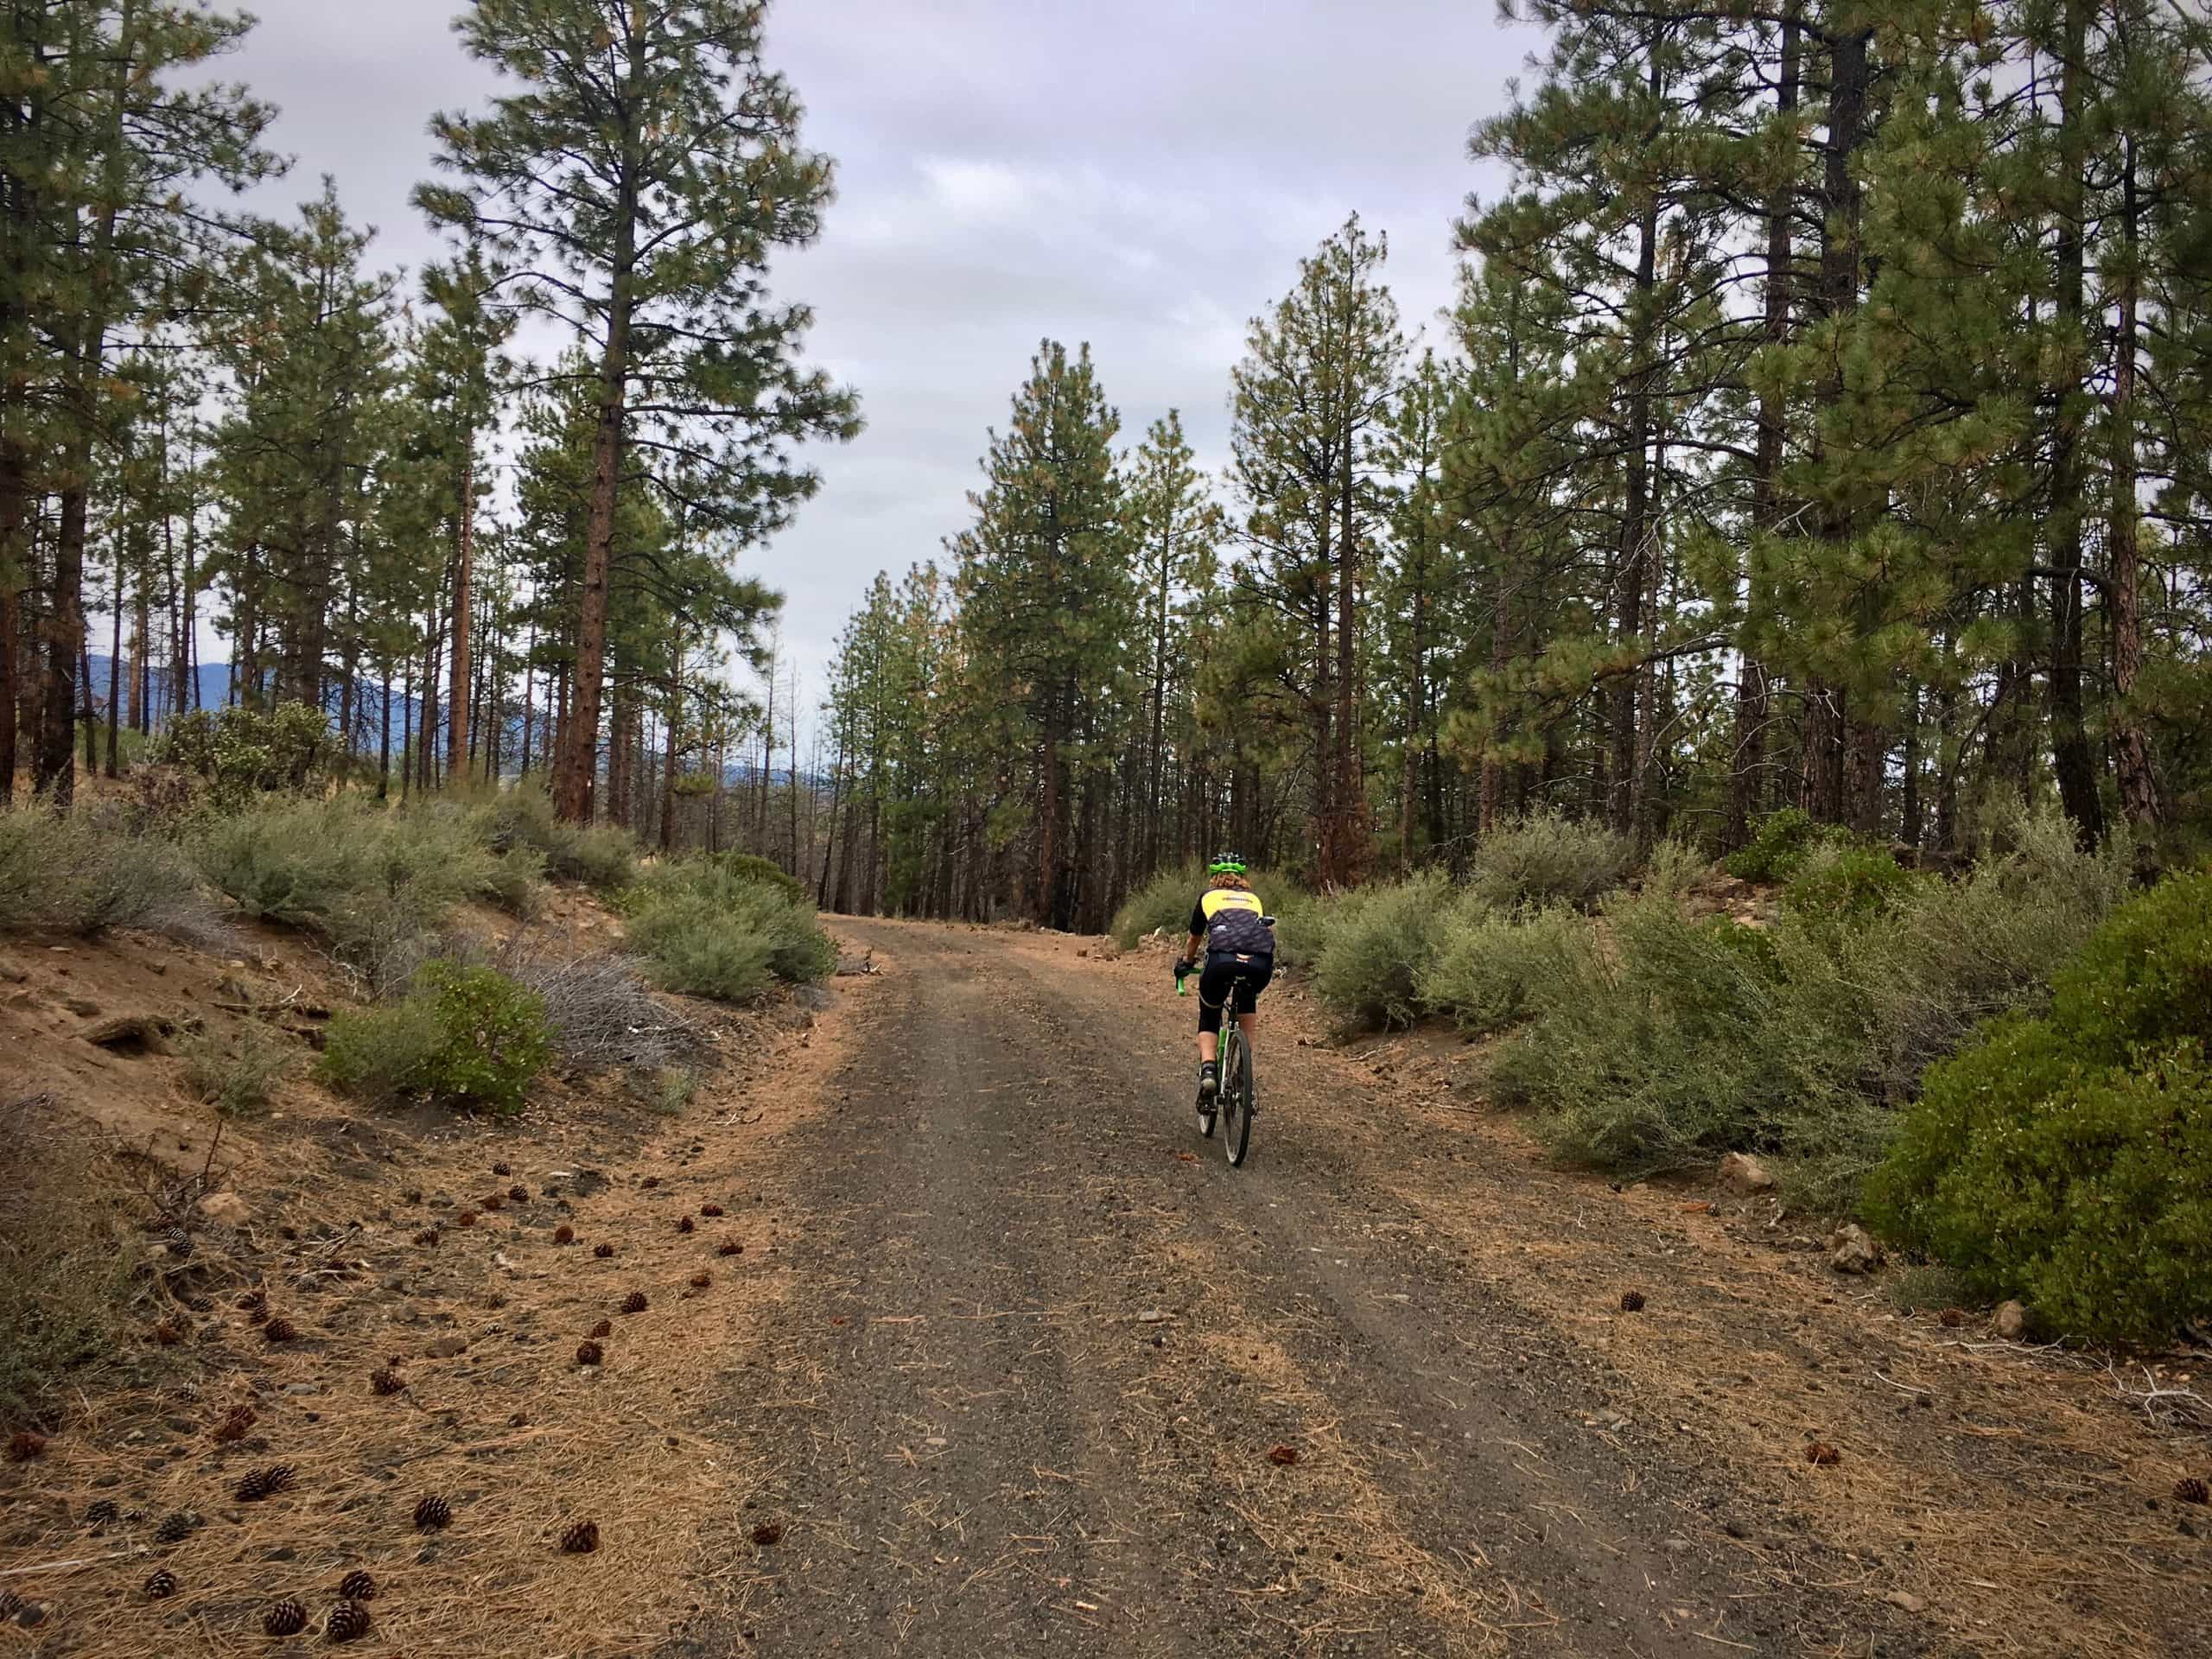 Cyclist on gravel road in the Skyline Forest near Bend, Oregon.